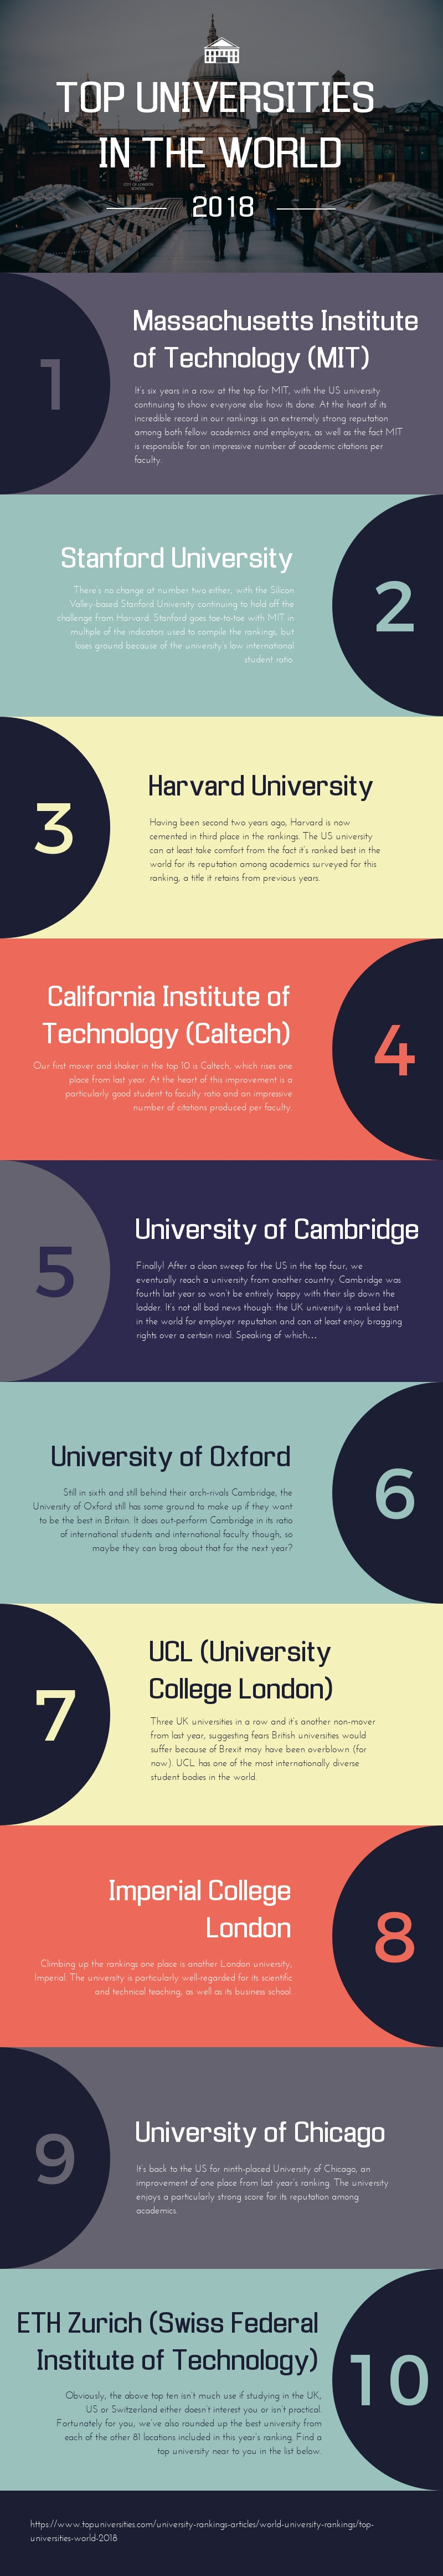 Top Universities in the World - Infographic Template